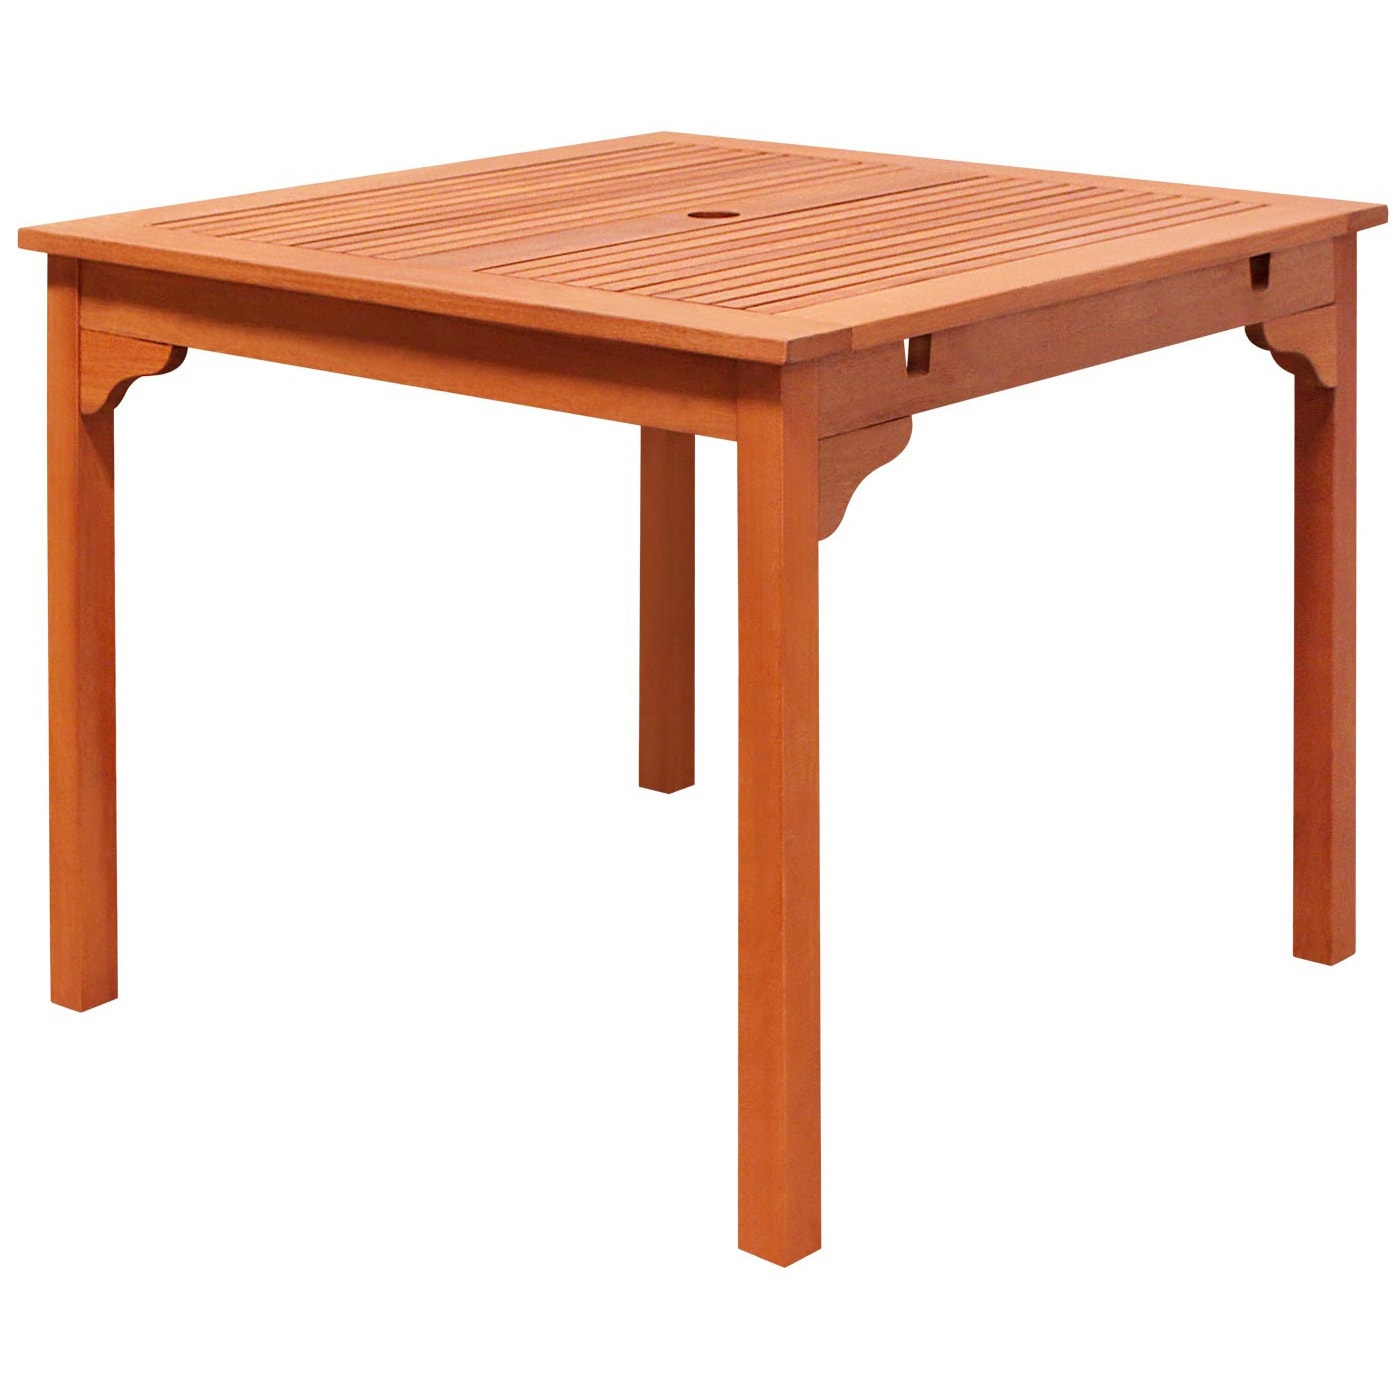 Shop The Gray Barn Bluebird Outdoor Eucalyptus Wood Stacking Dining Table    On Sale   Free Shipping Today   Overstock.com   22727505